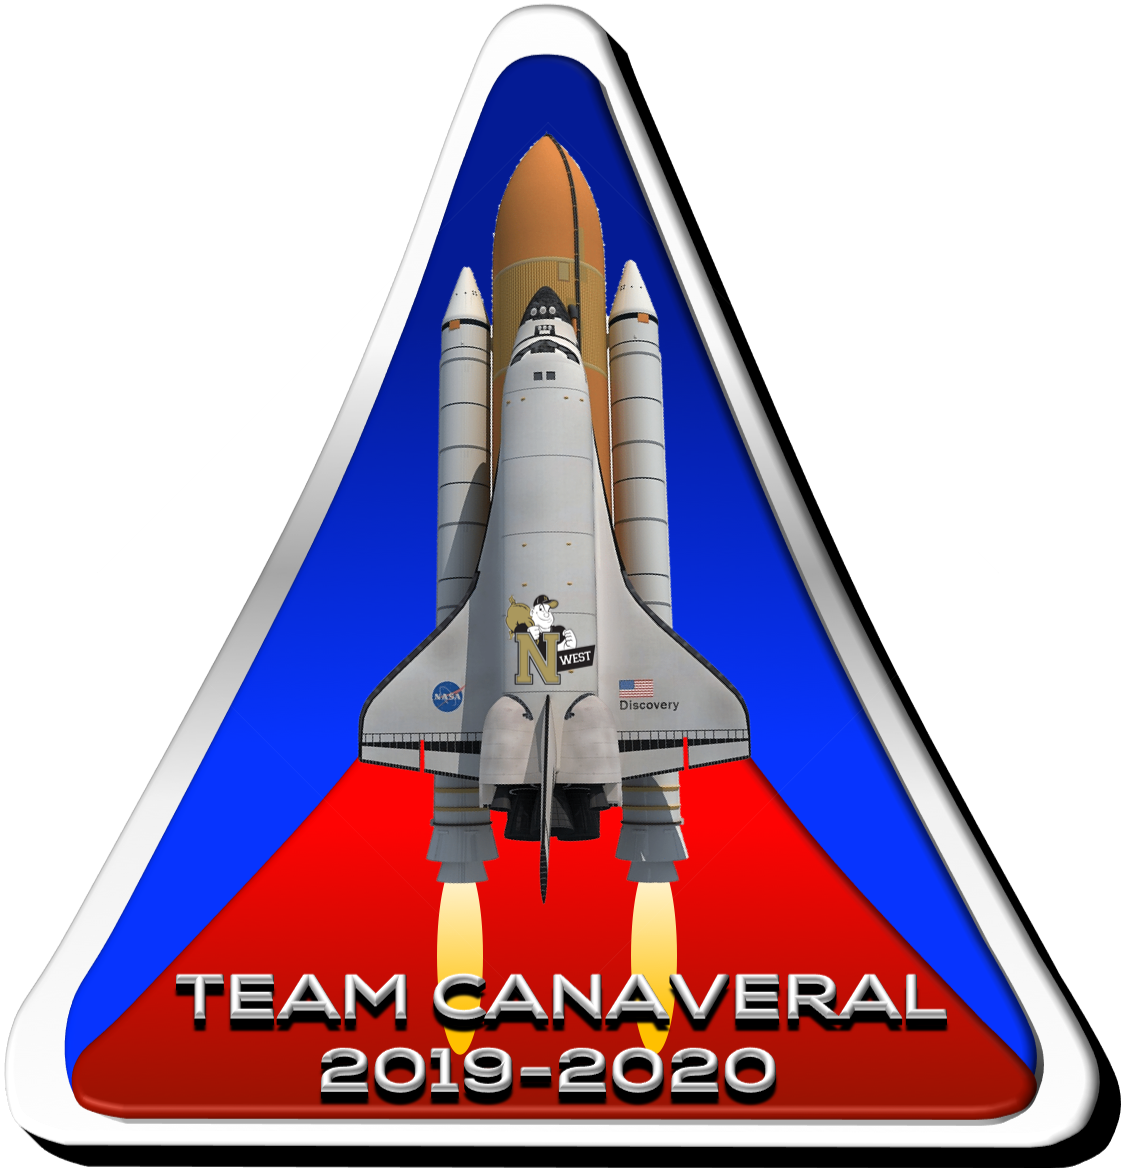 19-20 Canaveral Logo